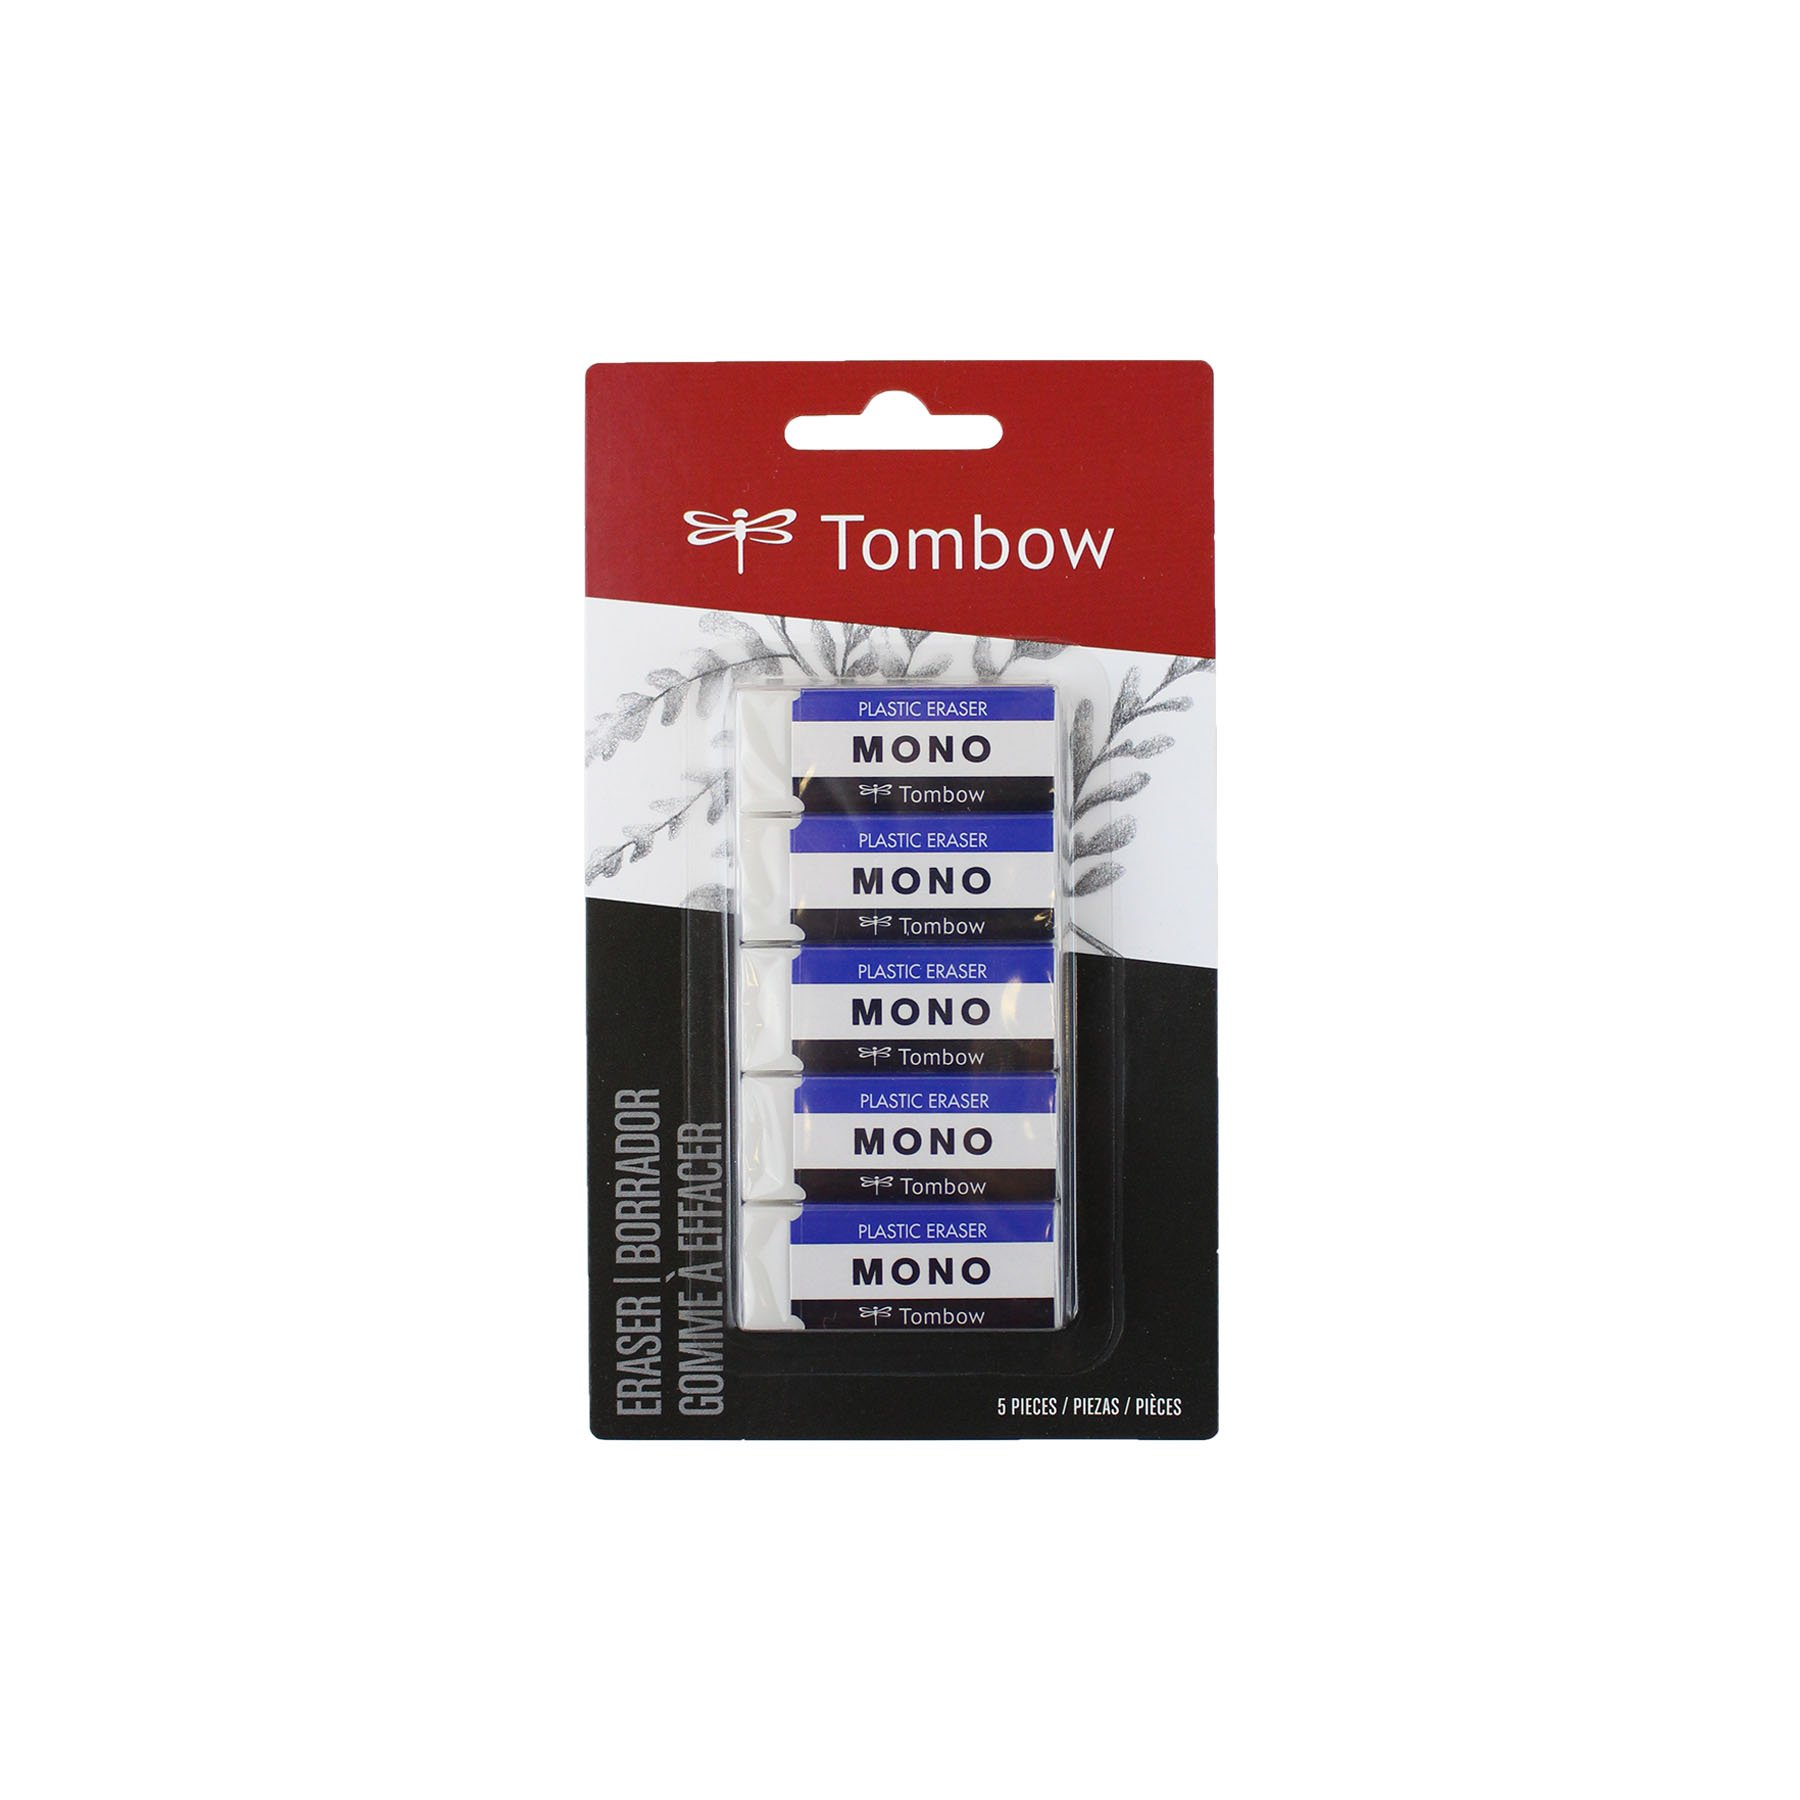 Tombow 57321 MONO Eraser, White, Small, 5-Pack. Cleanly...